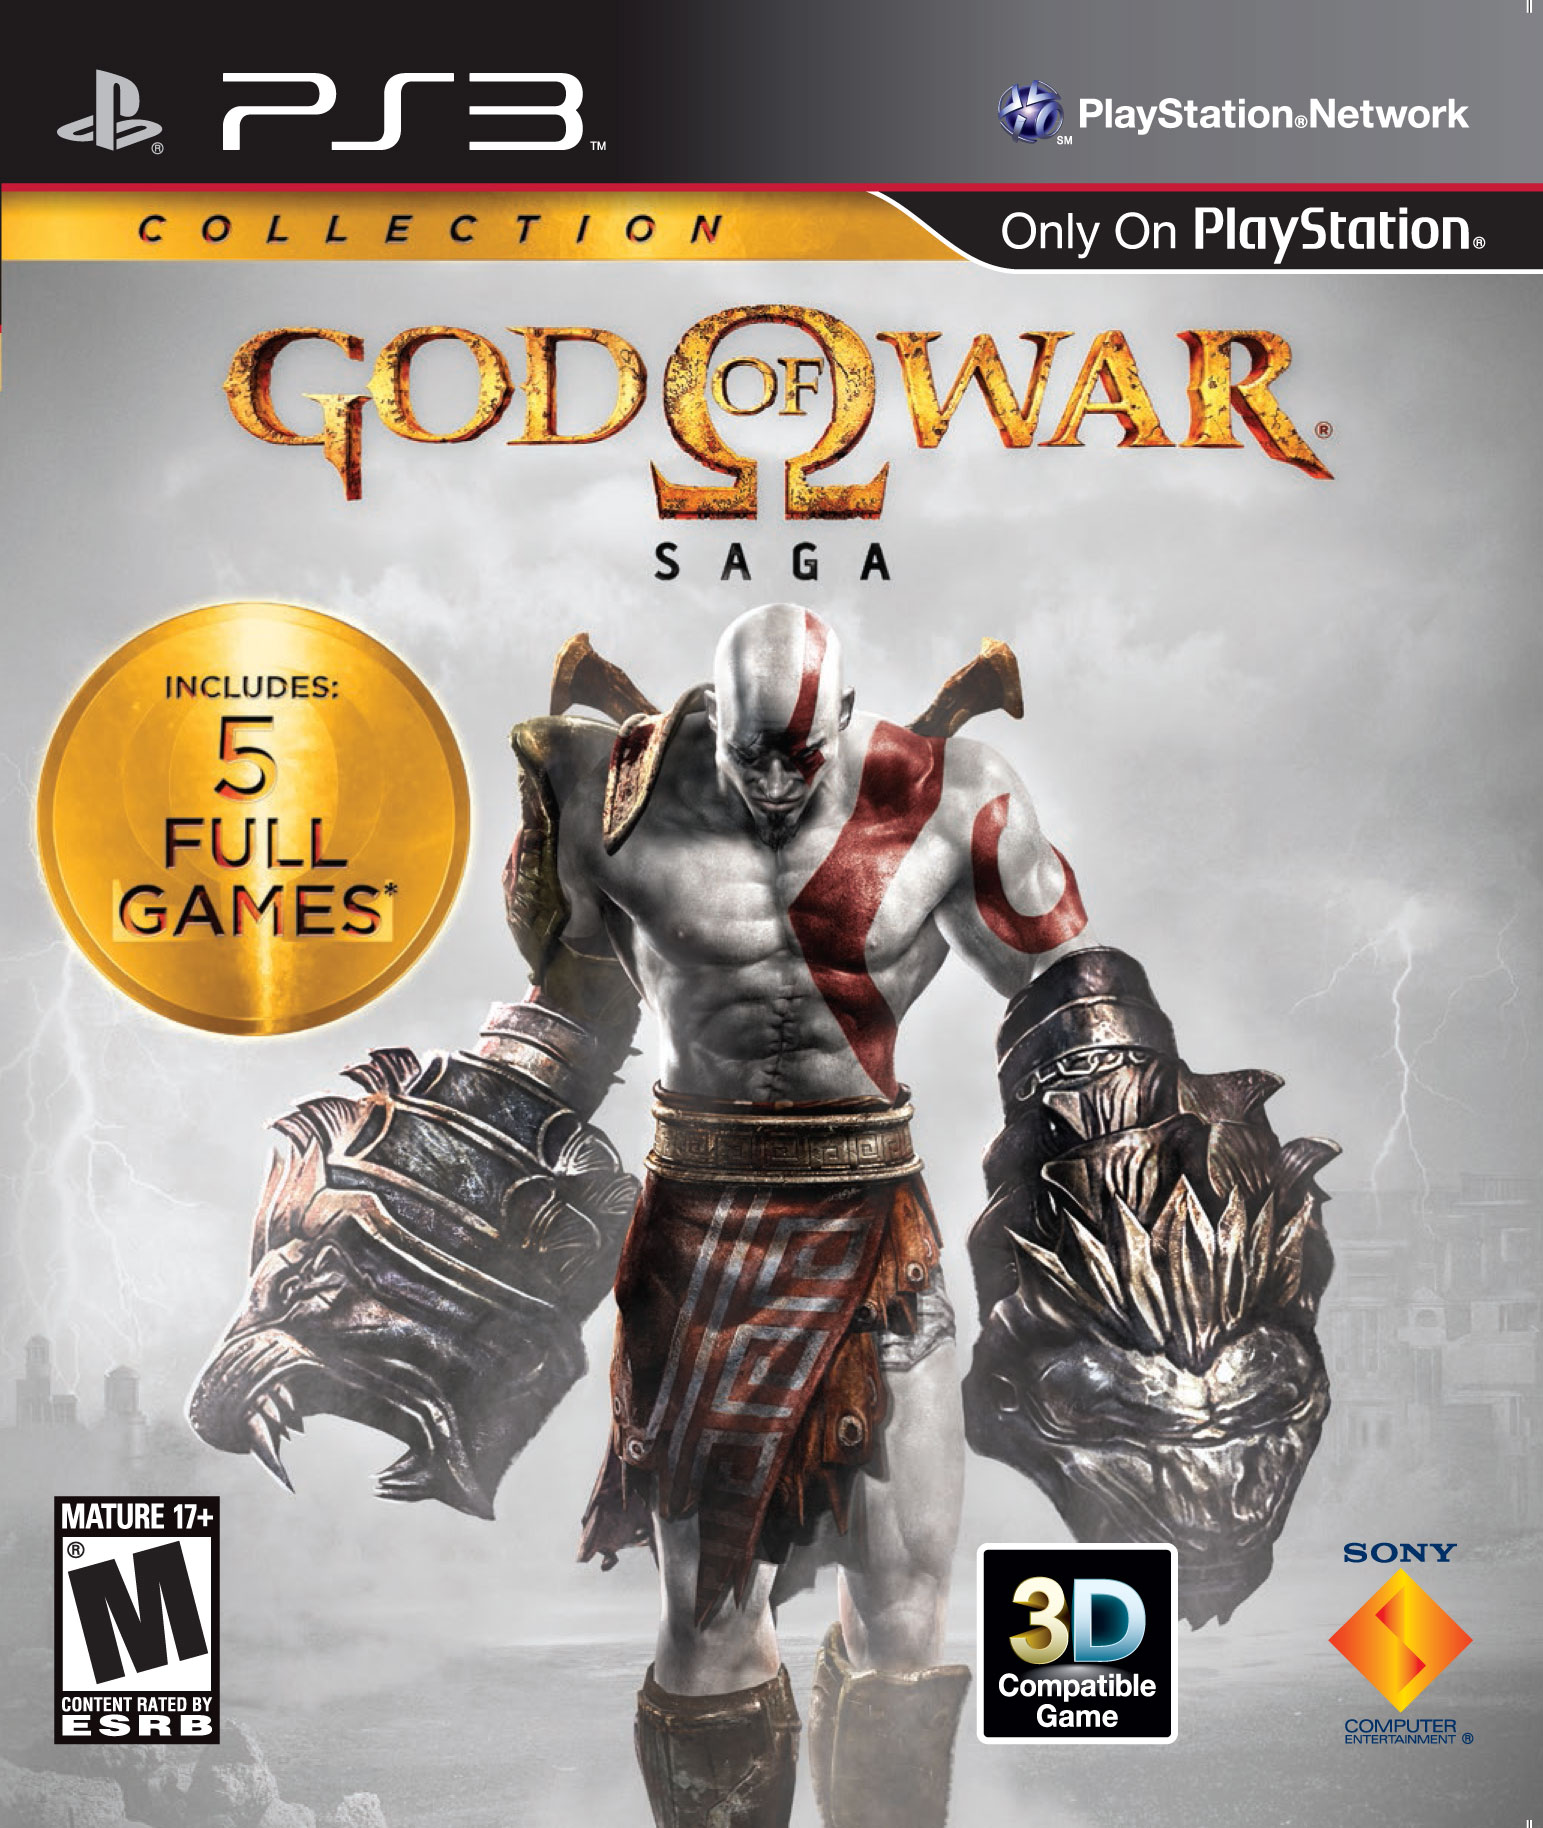 (Duda) God of War Saga